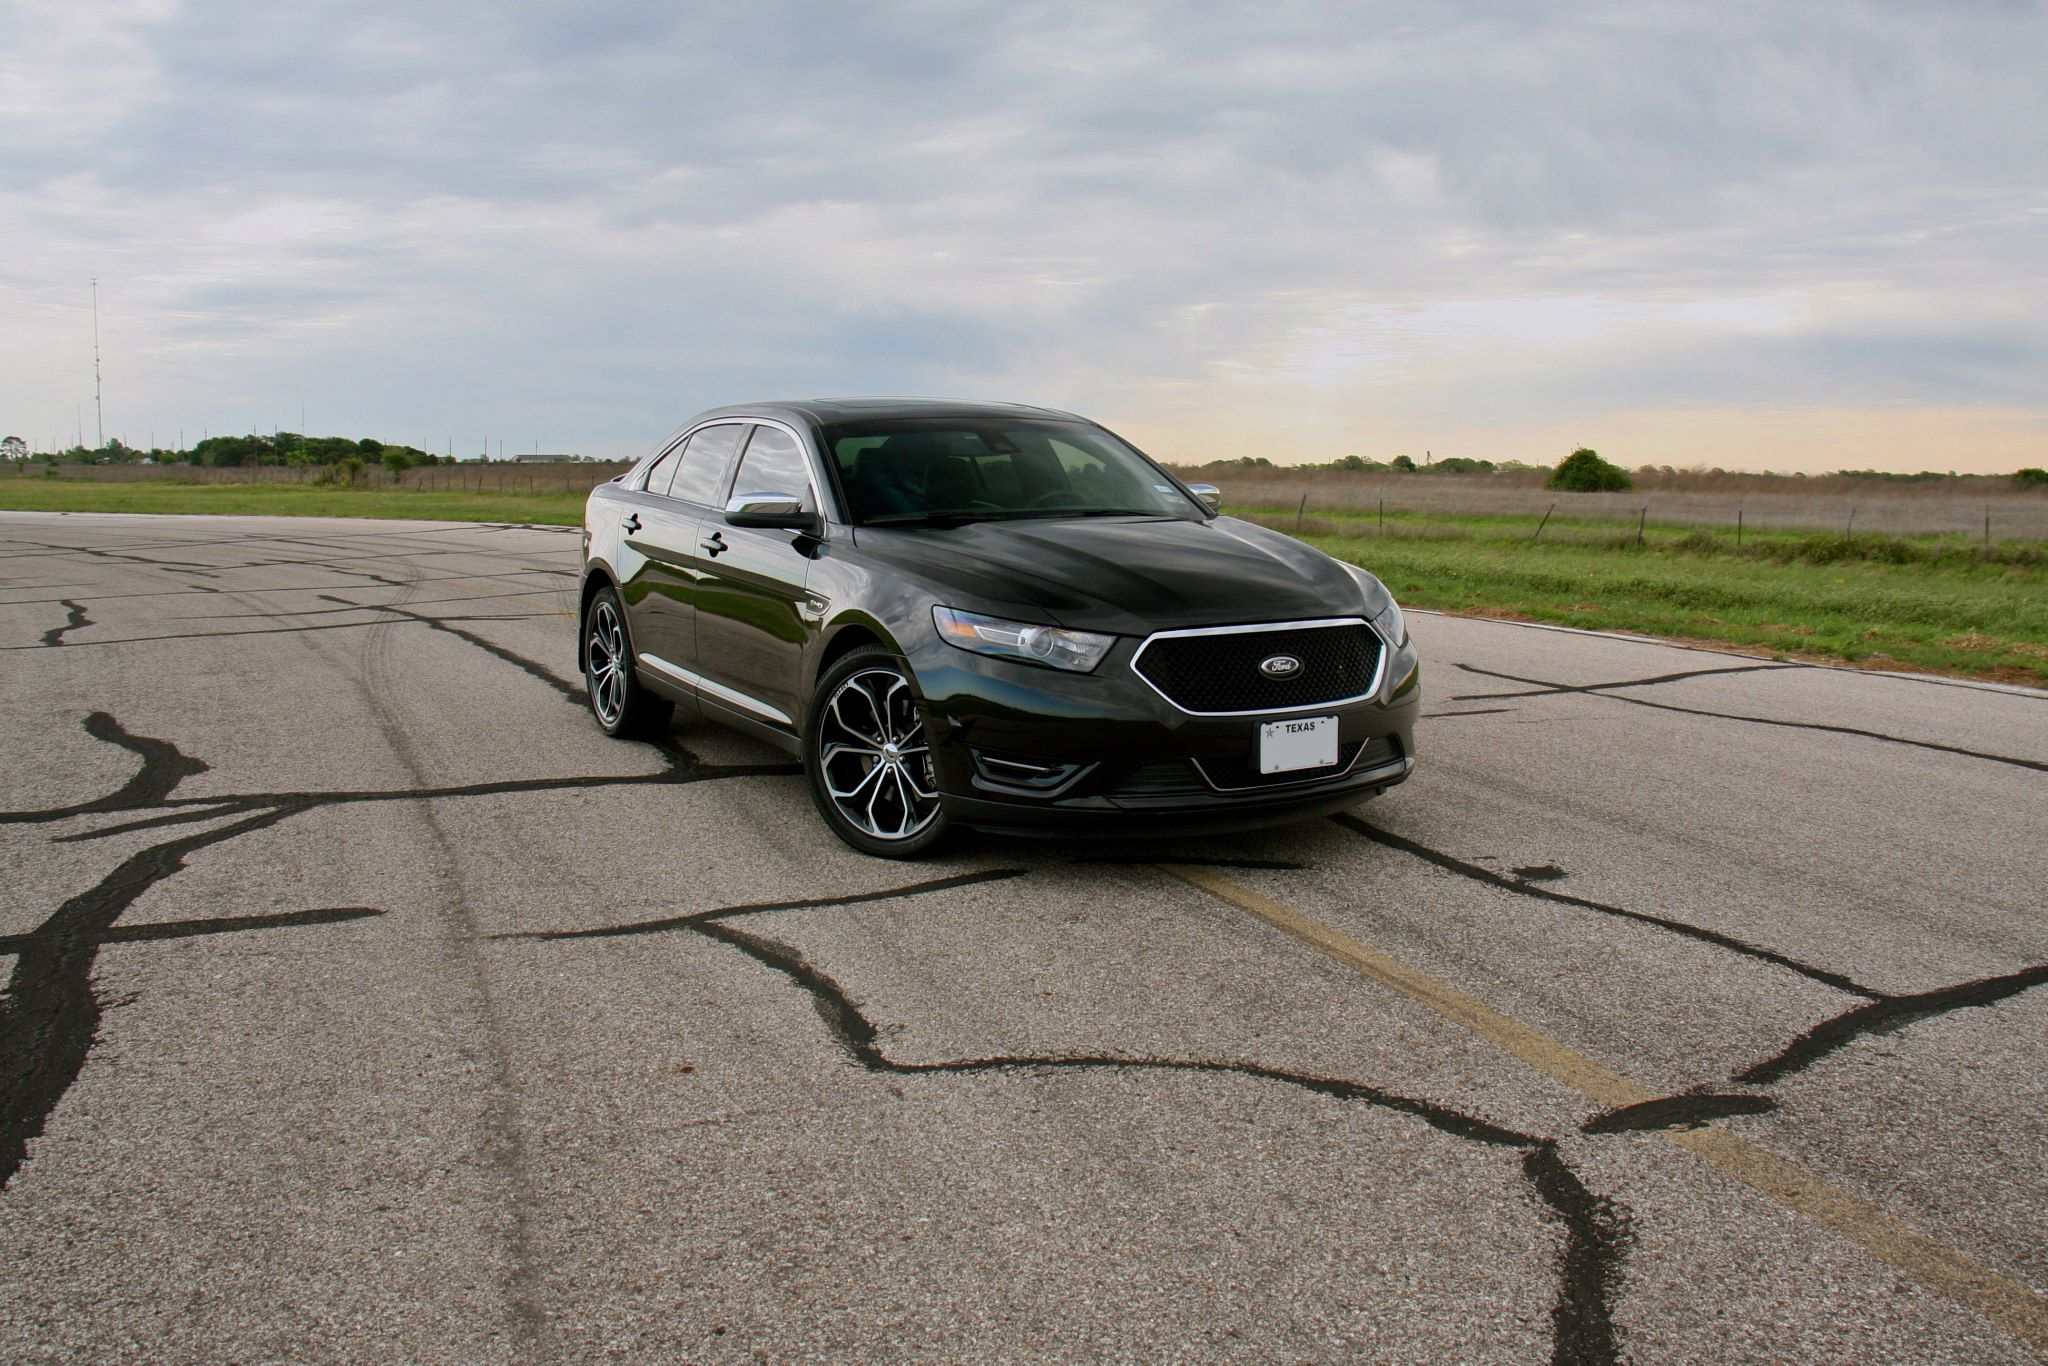 Hennessey S Ford Taurus Sho Is Fast Motor Trend